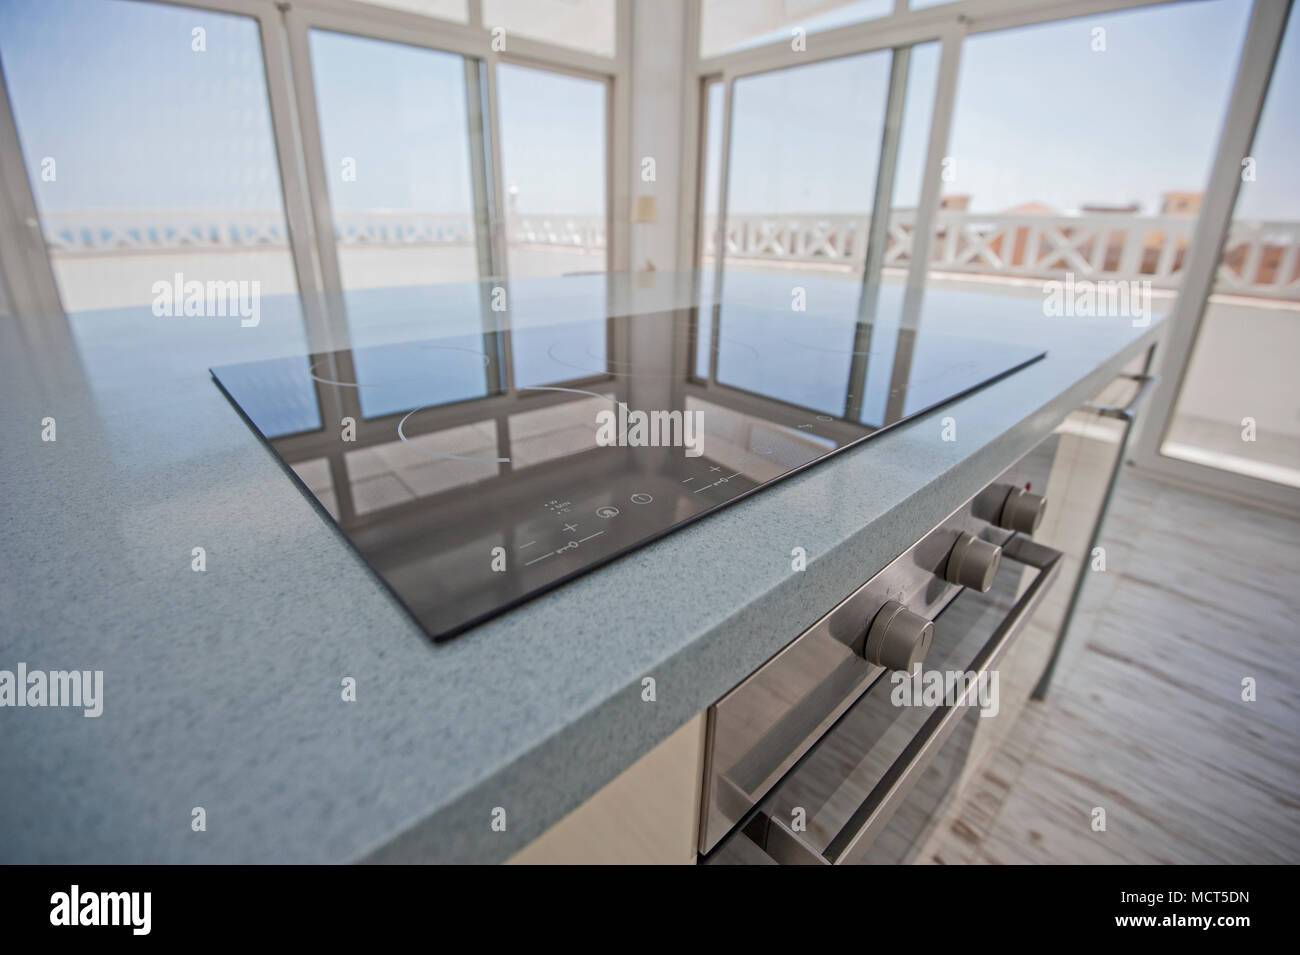 Interior Design Decor Showing Modern Kitchen And Cooker Appliance In Luxury Penthouse Apartment Showroom With Panoramic Patio Windows Stock Photo Alamy